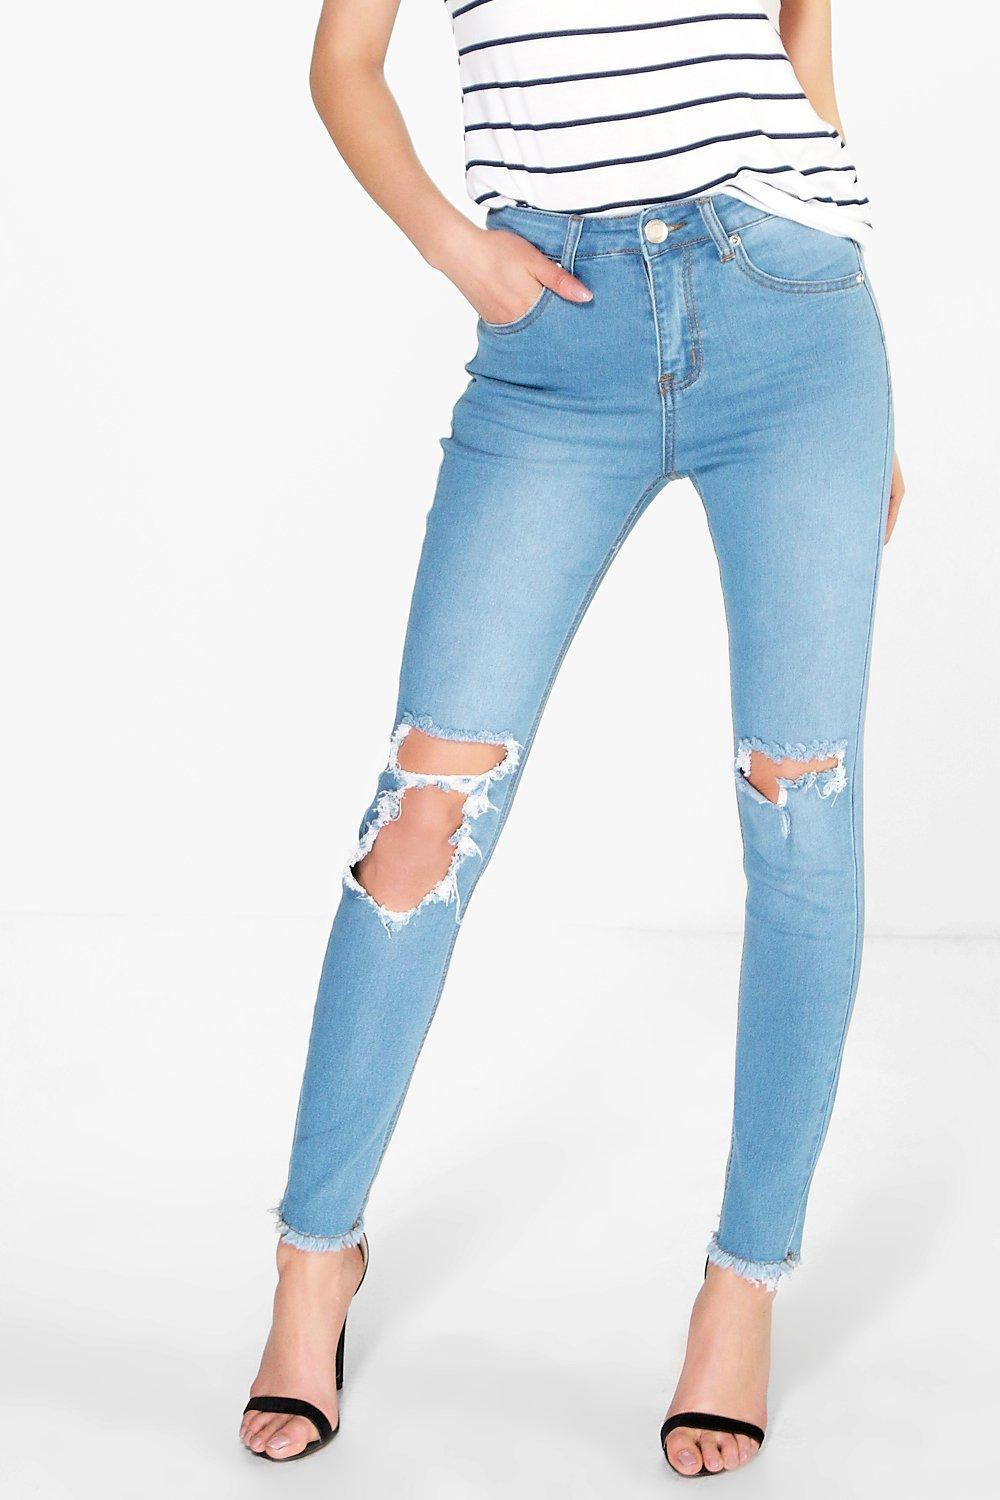 High Rise Clean Split Skinny Jeans Blue - style: skinny leg; length: standard; pattern: plain; waist: high rise; pocket detail: traditional 5 pocket; predominant colour: denim; occasions: casual; fibres: cotton - stretch; jeans detail: shading down centre of thigh, rips; texture group: denim; pattern type: fabric; season: s/s 2016